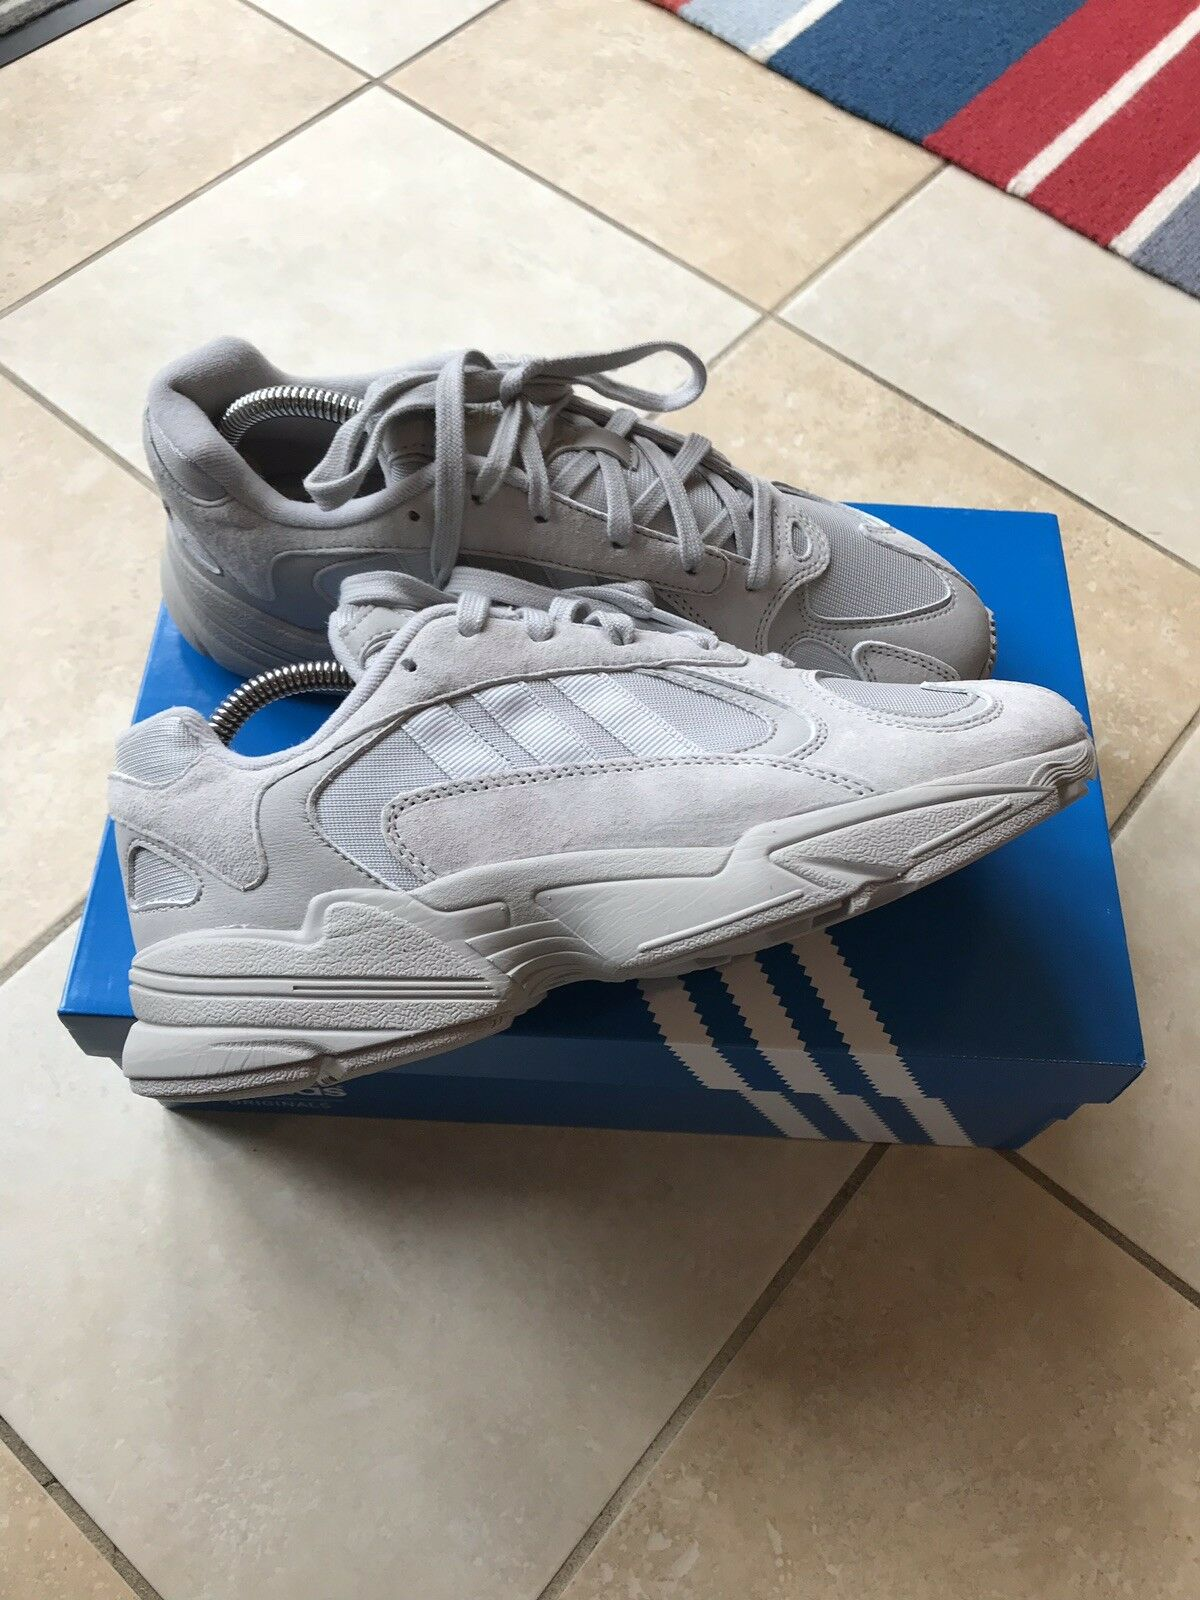 Adidas Yung - 1 Gris Basketsnstuff Exclusive Uk8.5